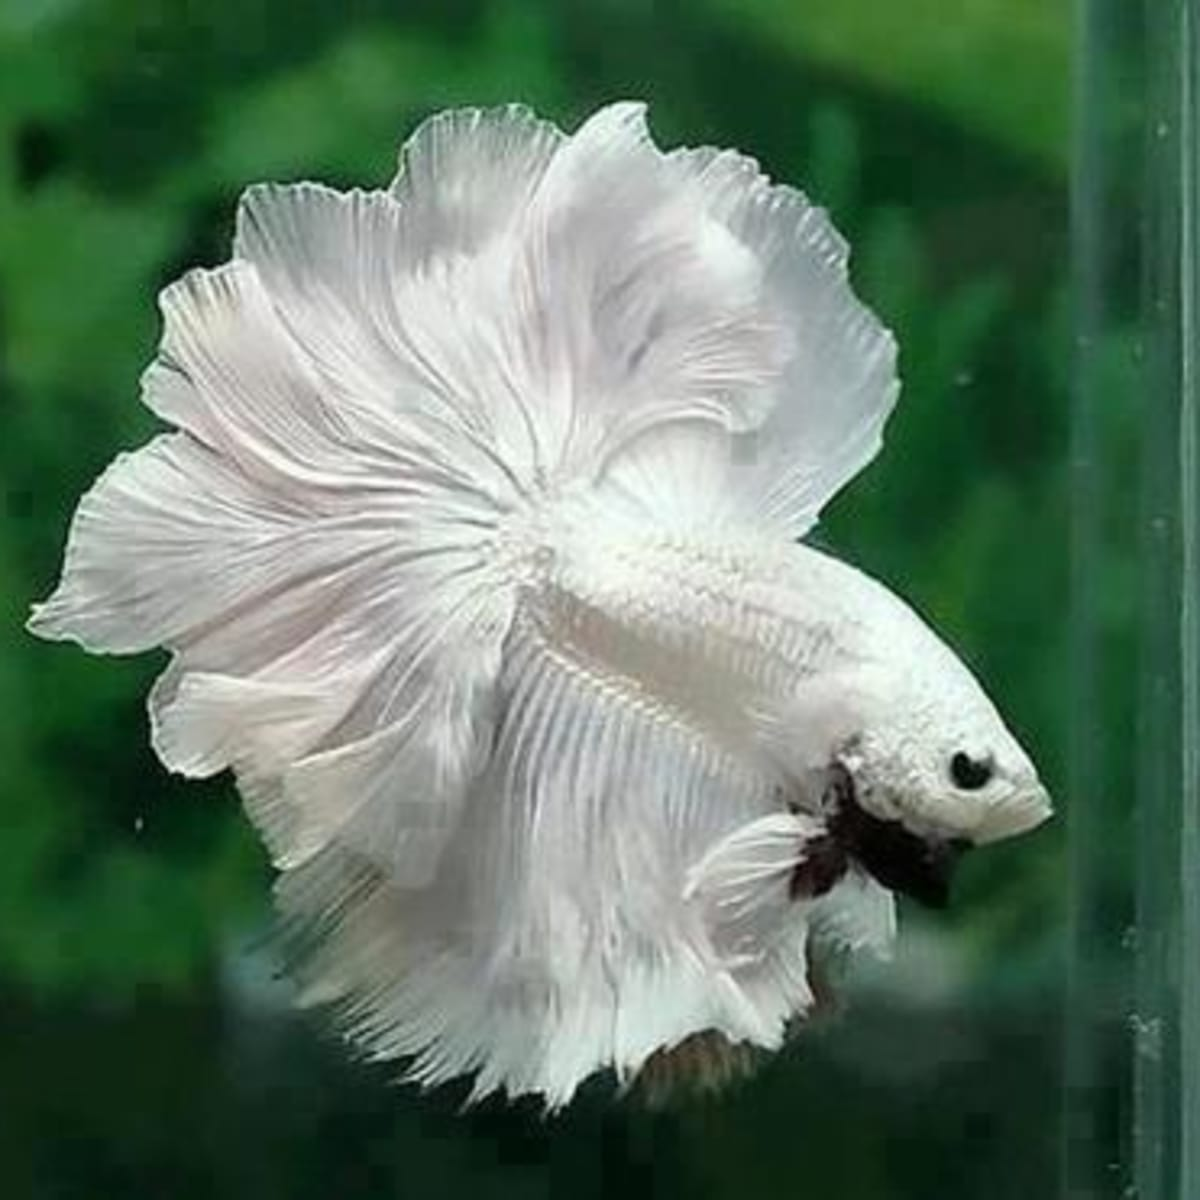 Betta Fish Tank Setup Ideas Pethelpful By Fellow Animal Lovers And Experts